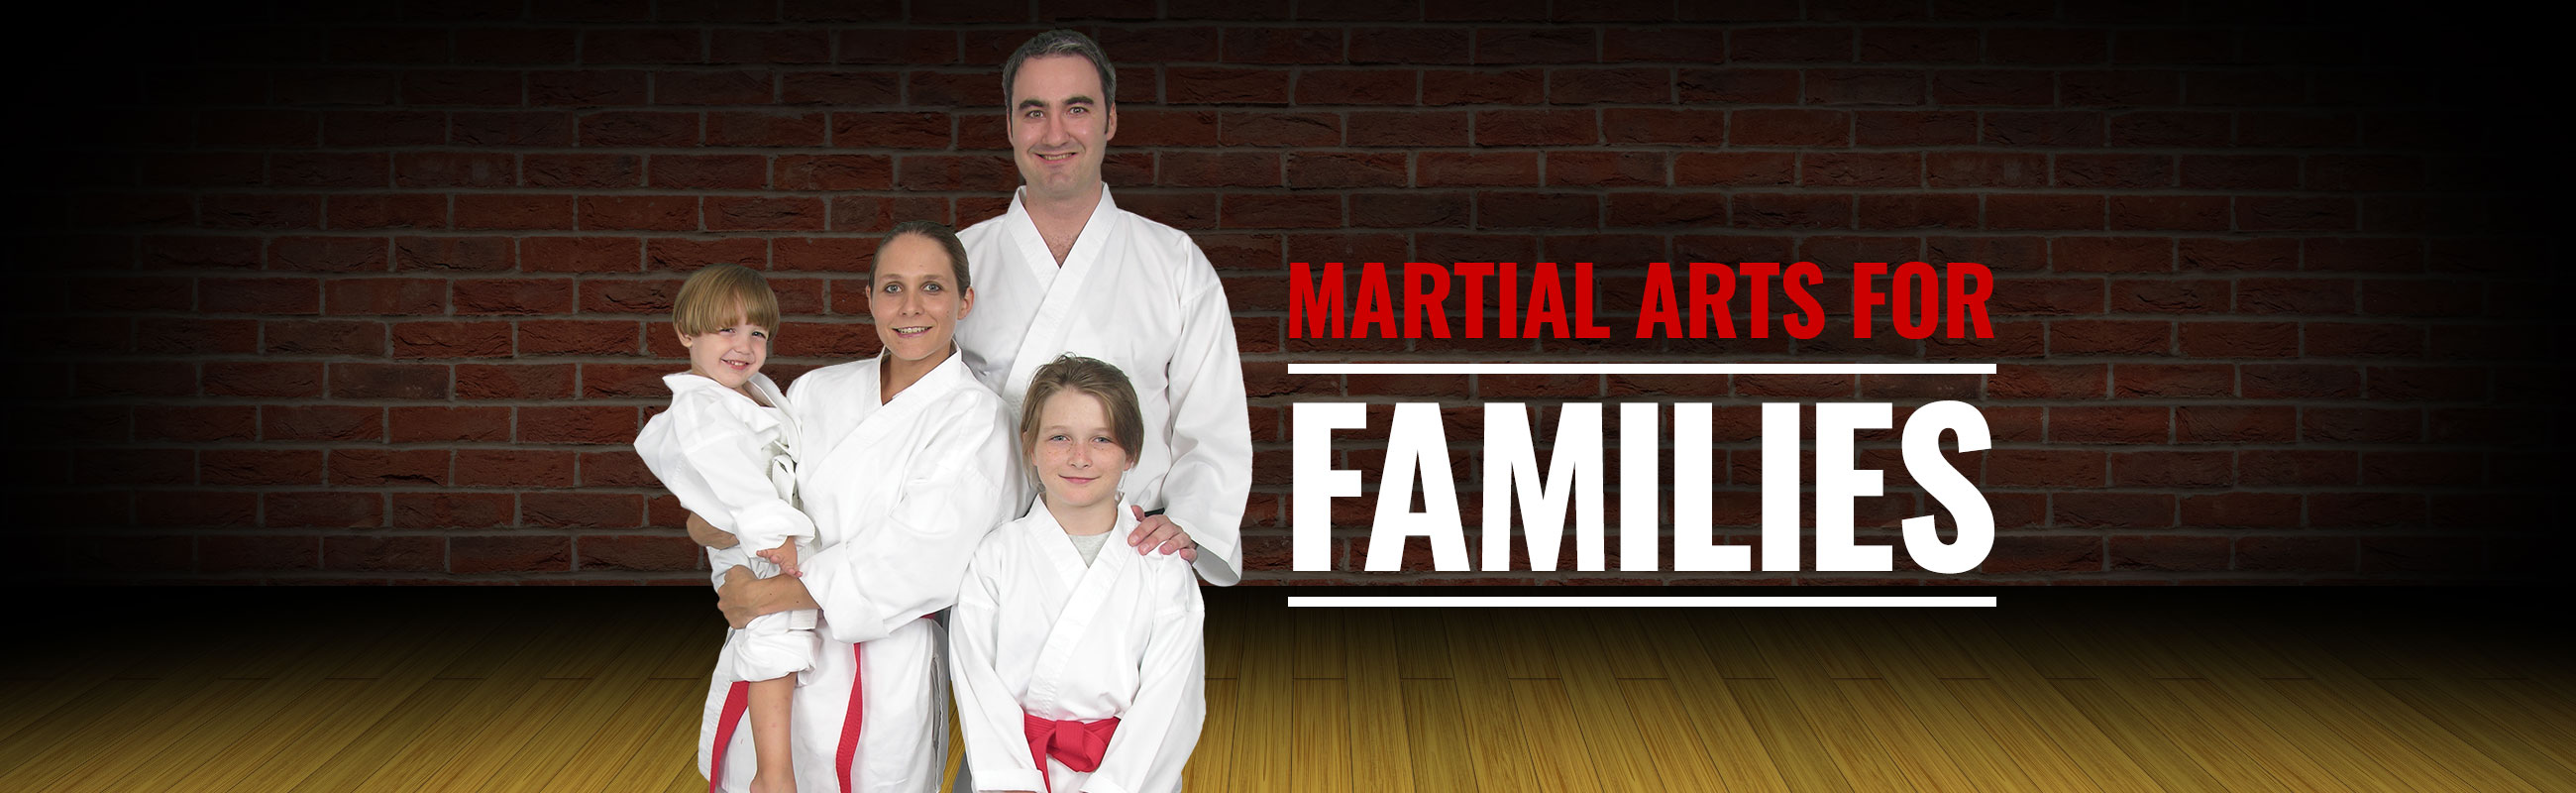 sider-martial-arts-for-families